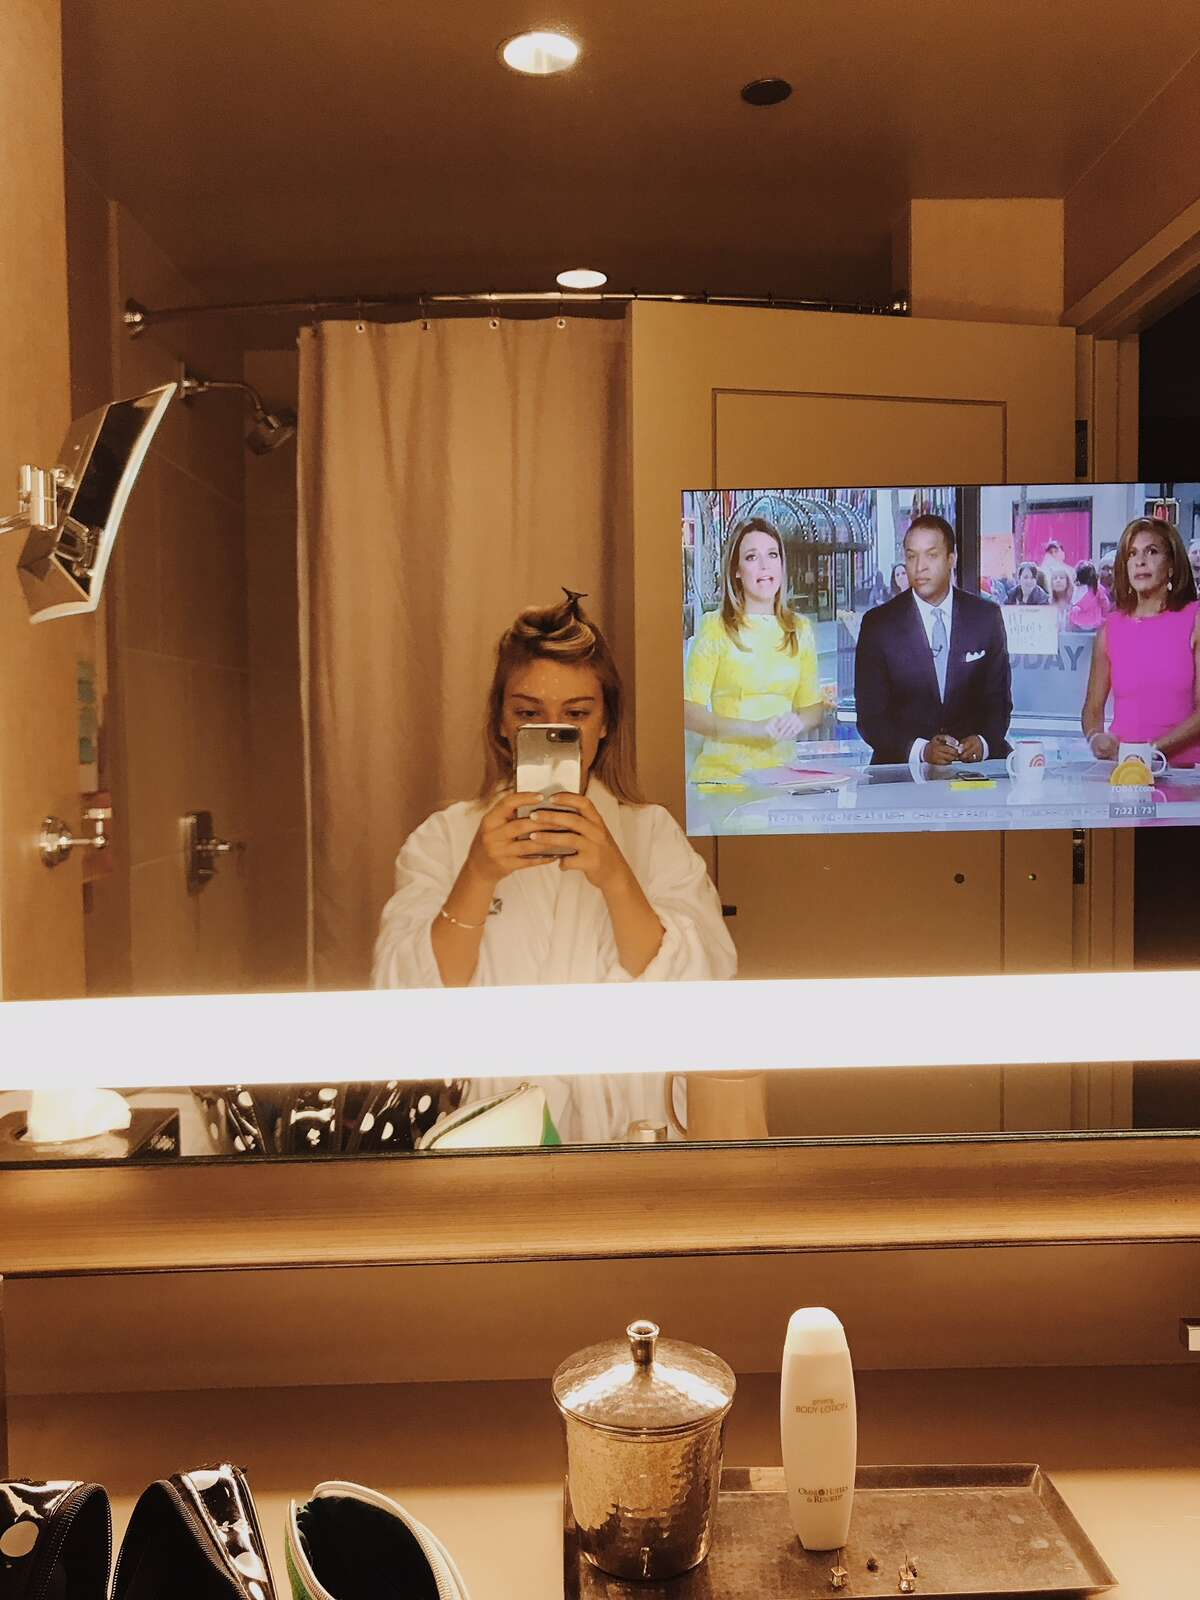 2. I time my morning routine so that I'm always in front of the TV for the intro of the Today Show at 7 a.m.